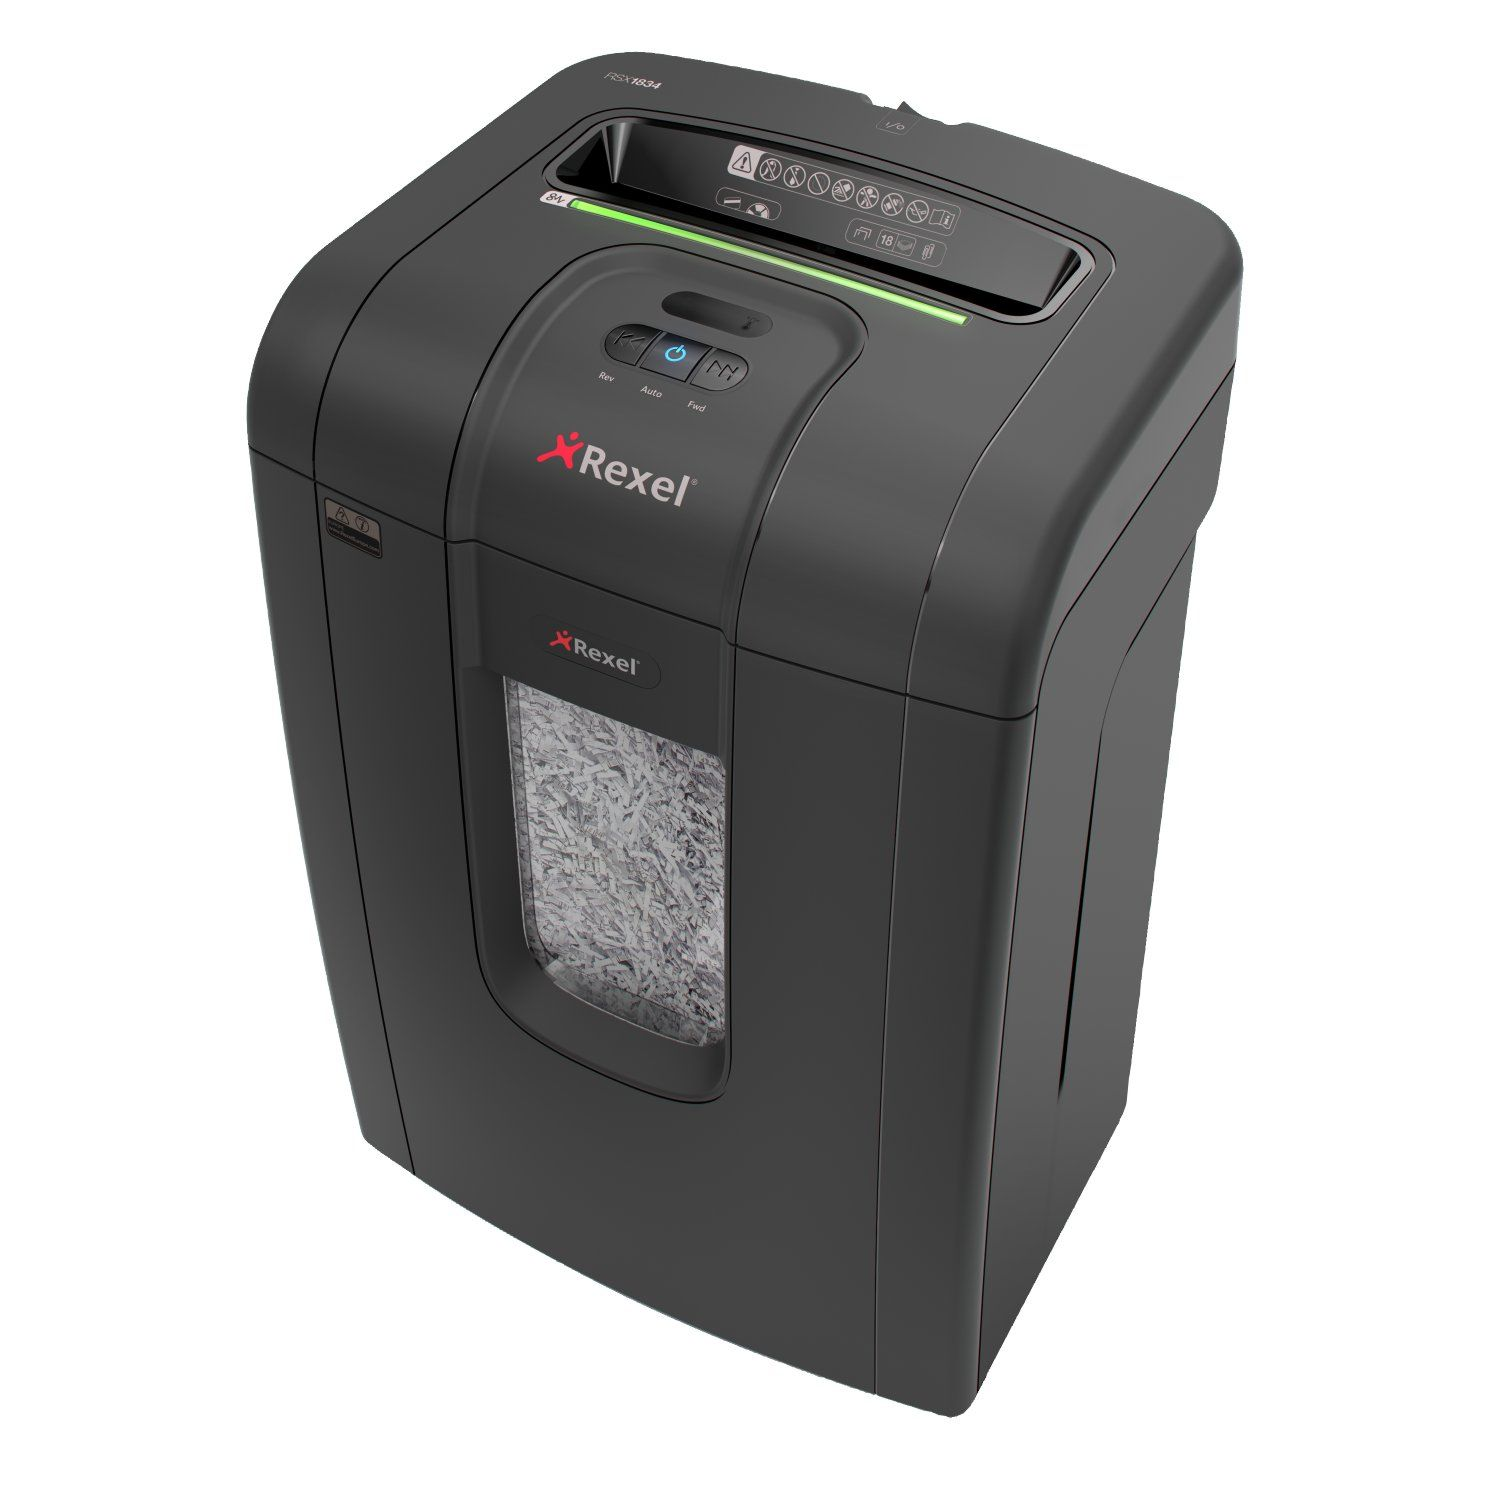 Rexel RSX1834 Shredder 4.0x40mm Cross Cut 34 Litre 18 Sheet P-4 Ref 2105018 [Promo]